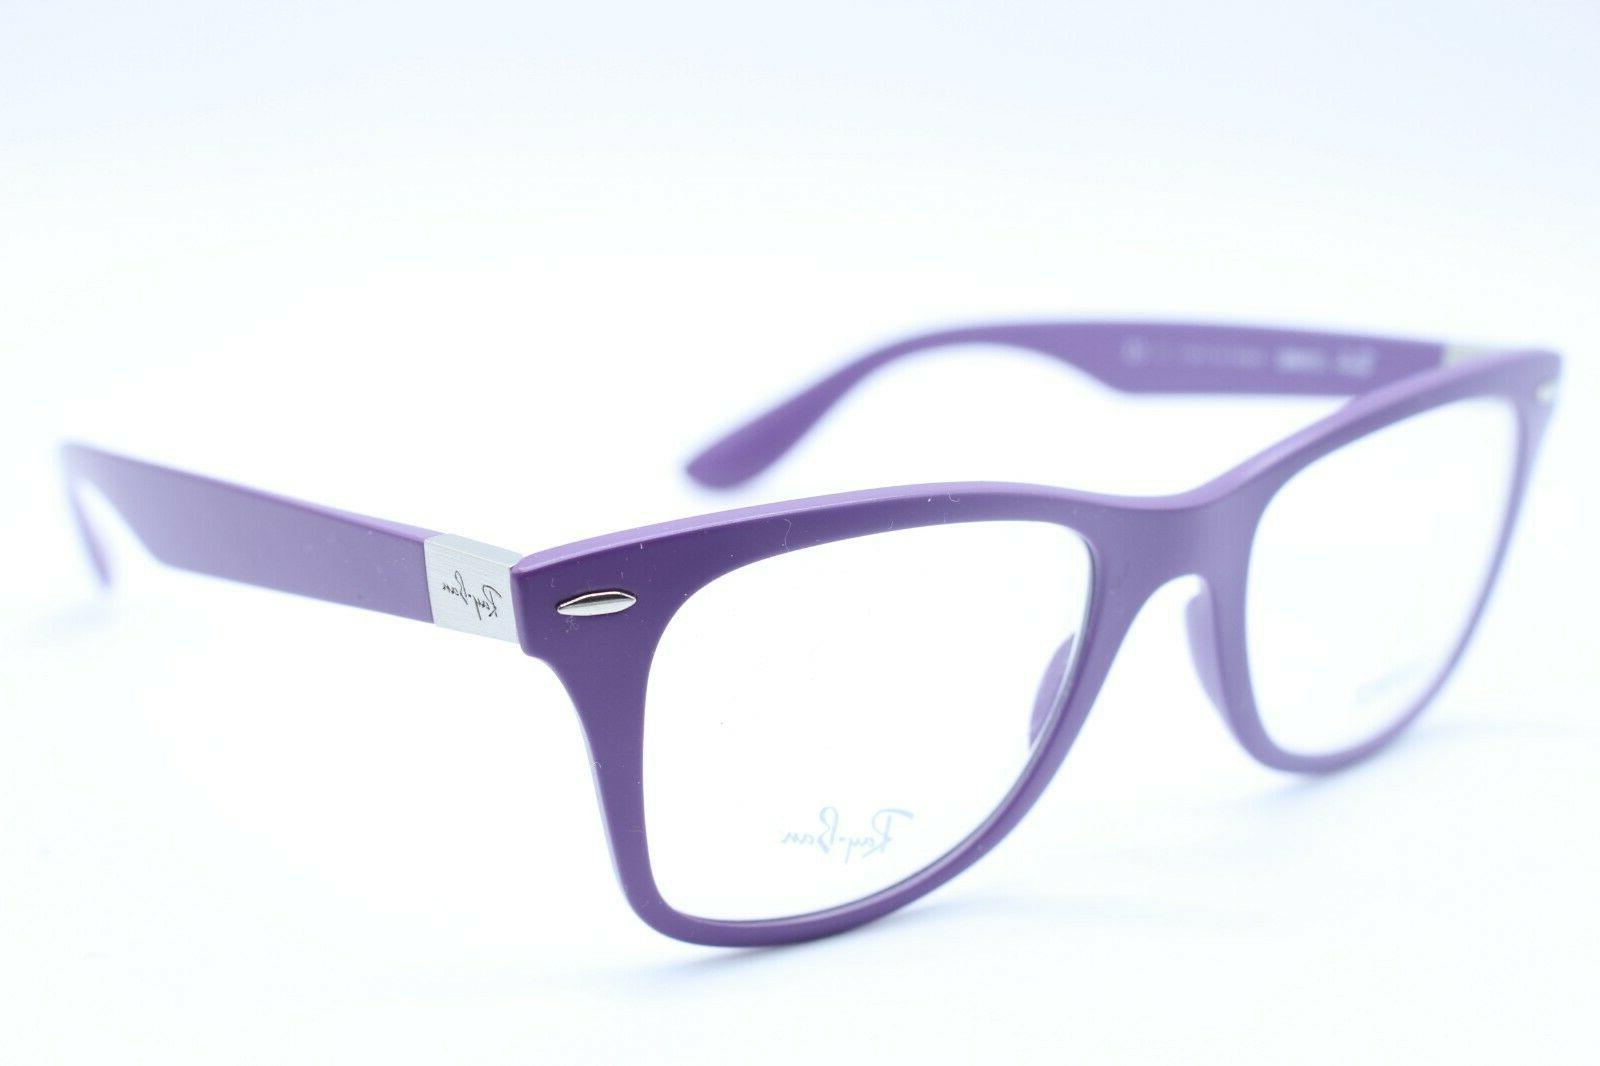 NEW RAY-BAN RB 7034 5443 PURPLE AUTHENTIC EYEGLASSES RX RB70